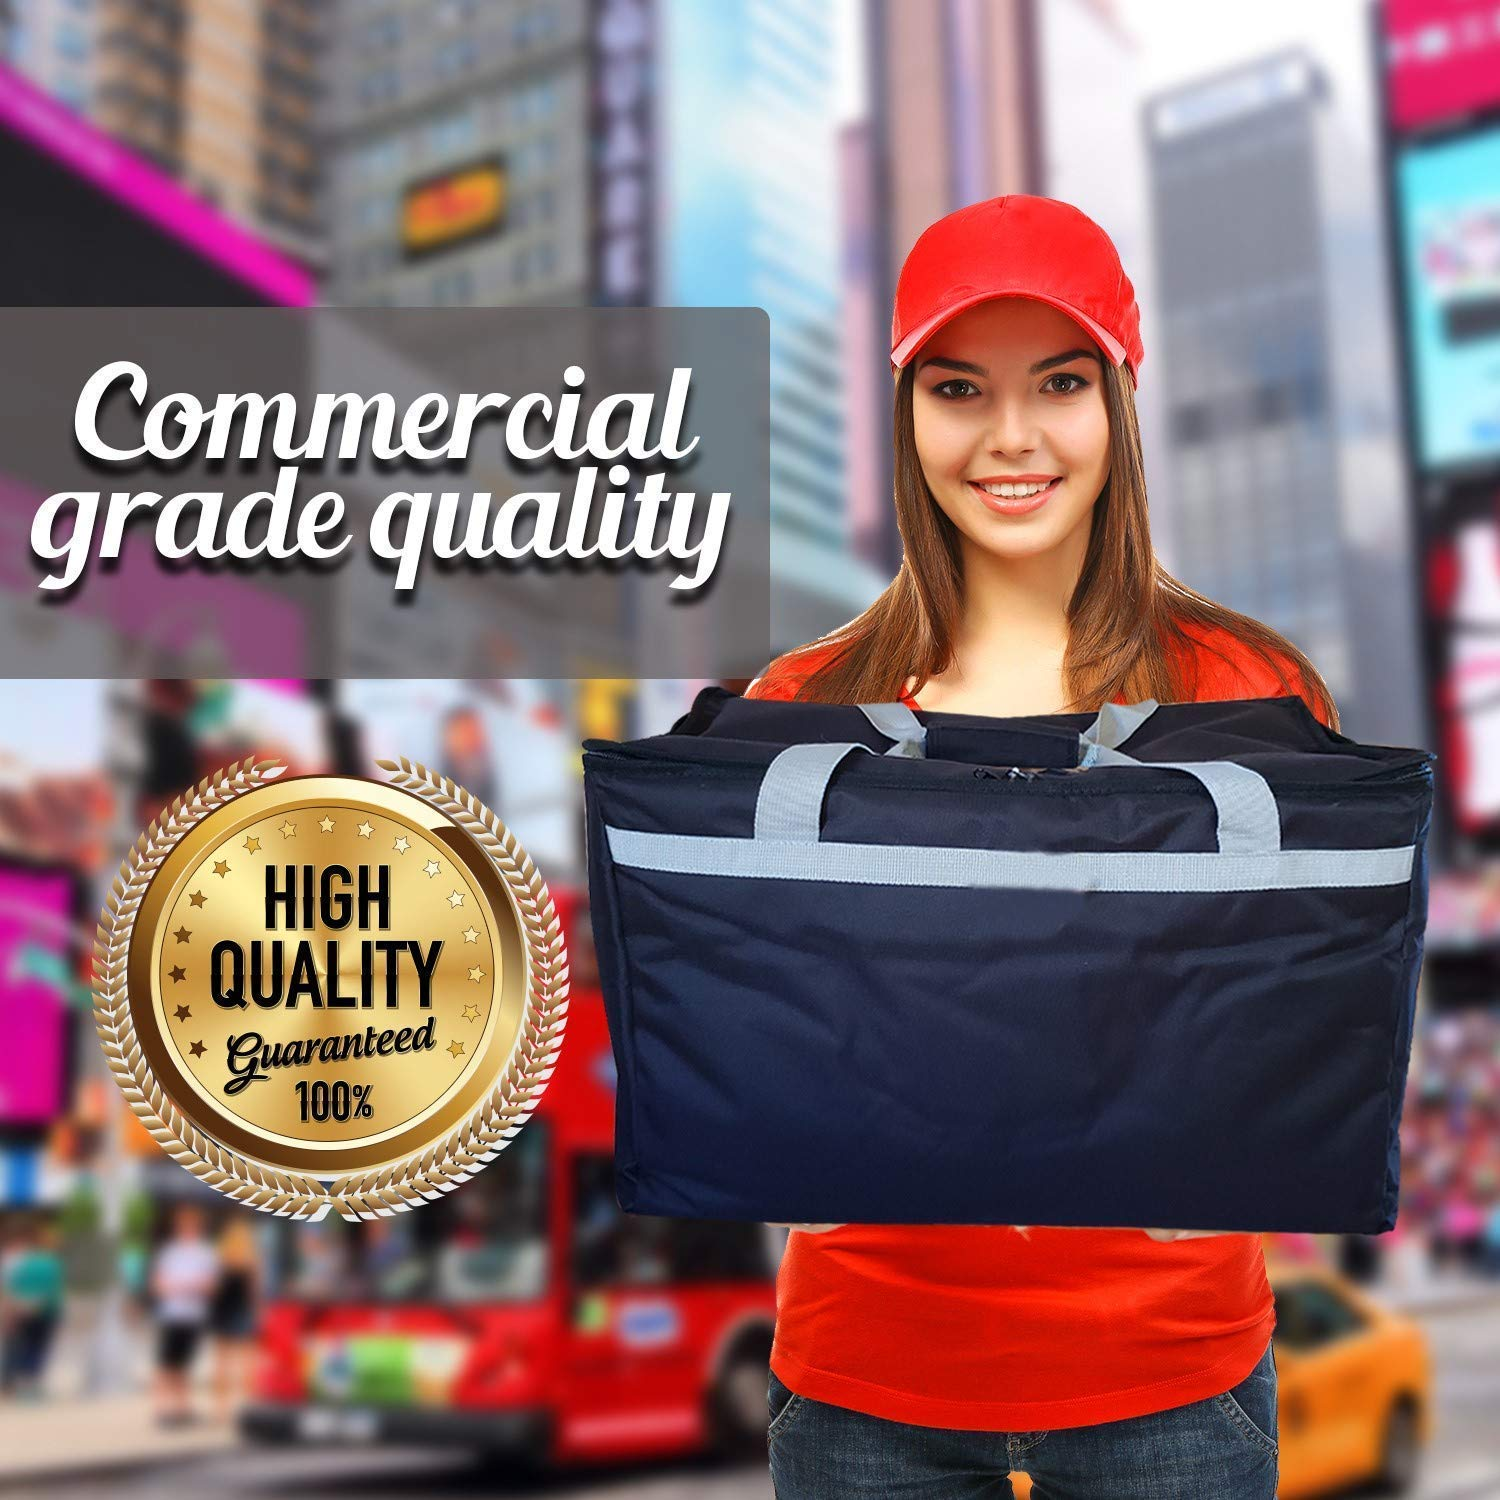 Candid- Insulated Food Delivery Bag (21''L x 14''W x 15''H), Hot/Cold Thermal Lightweight Grocery, Catering, Delivery or Party Bag. by CANDID (Image #2)